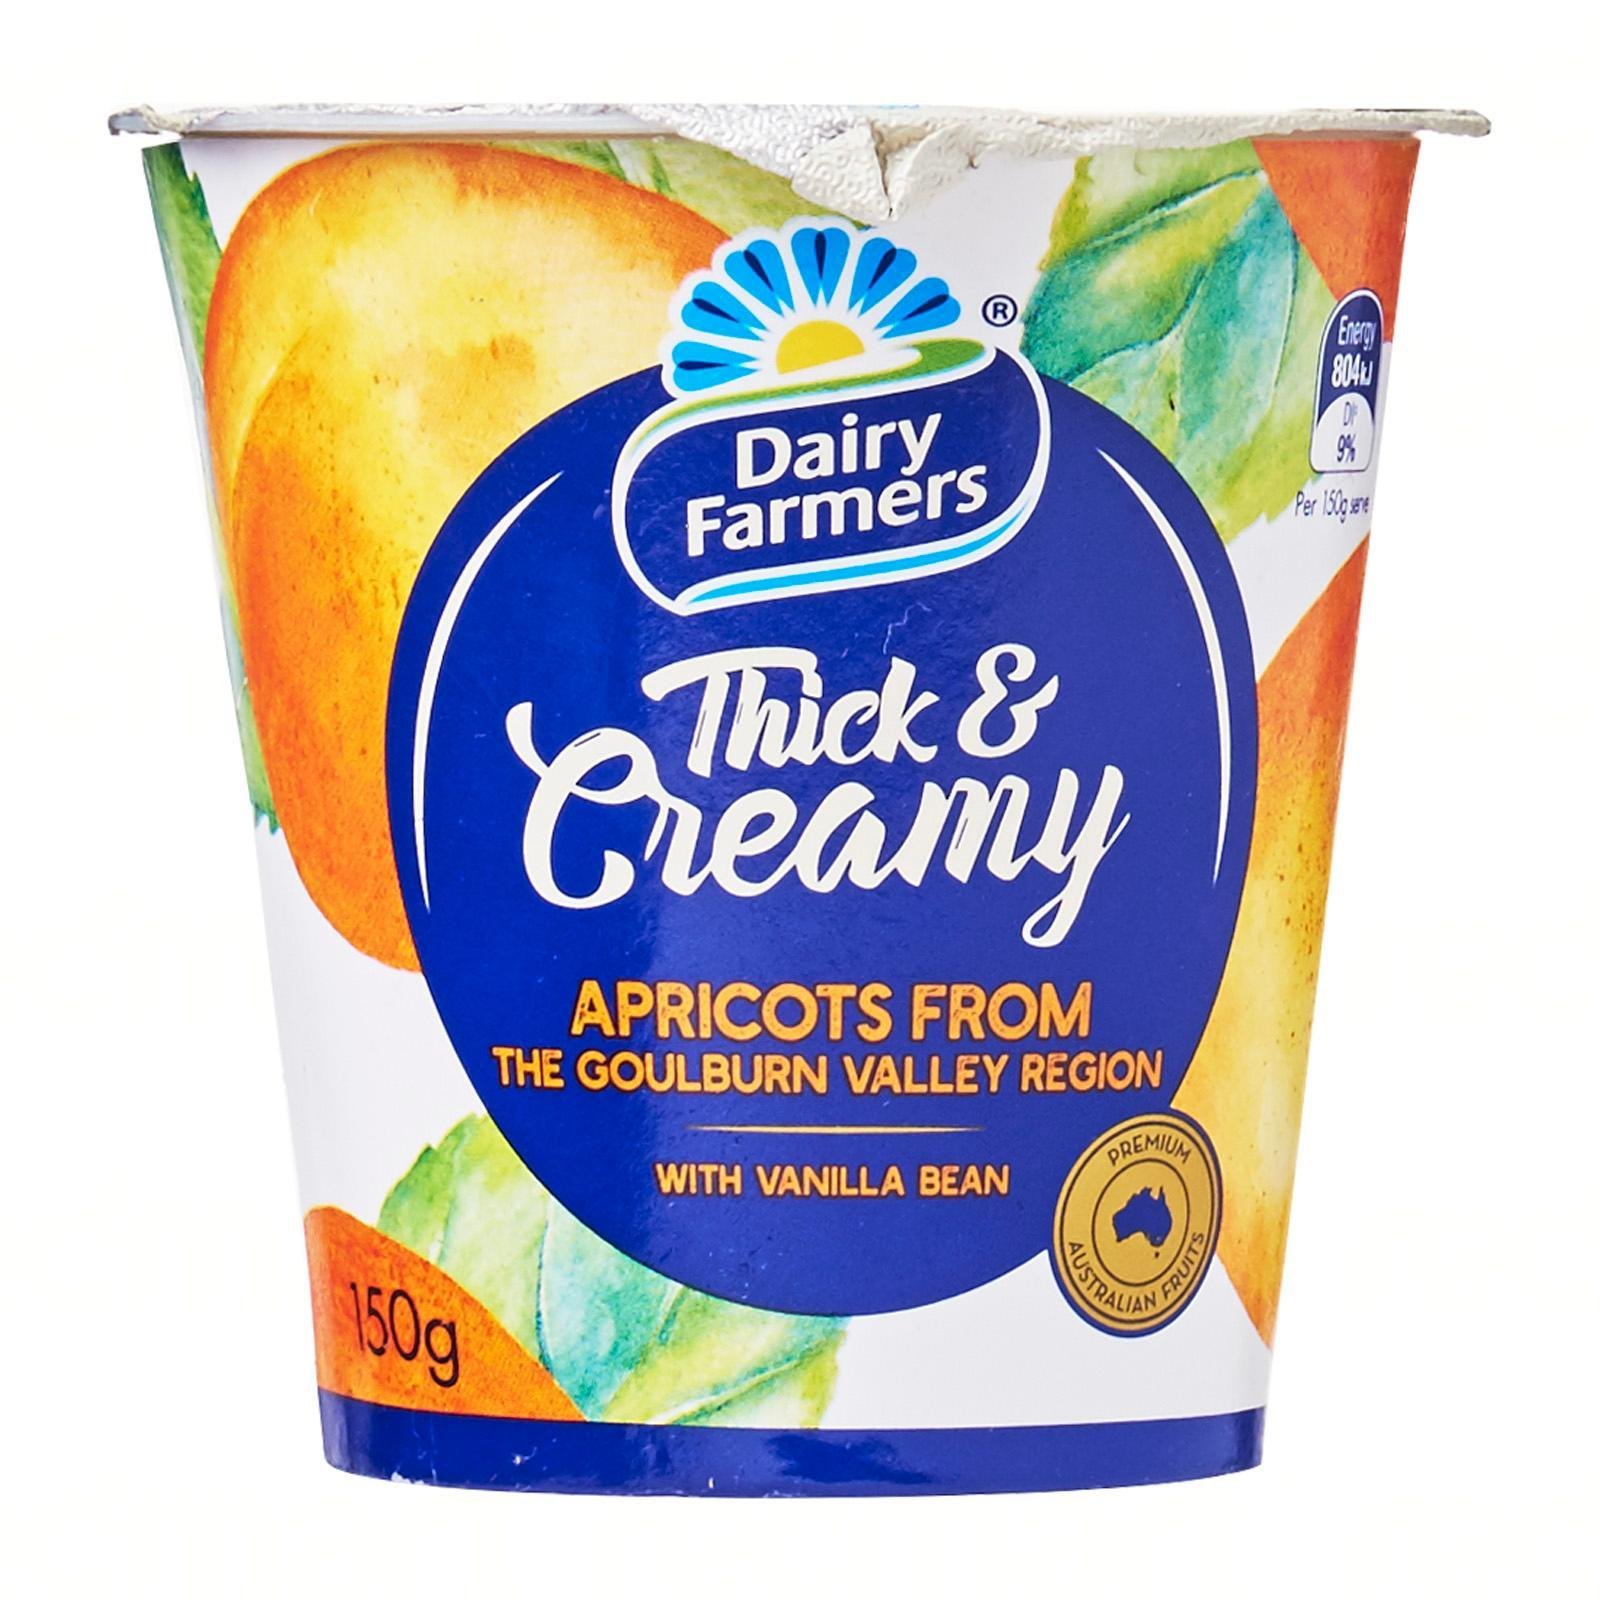 Dairy Farmers Thick and Creamy Apricot and Vanilla Yoghurt 150g